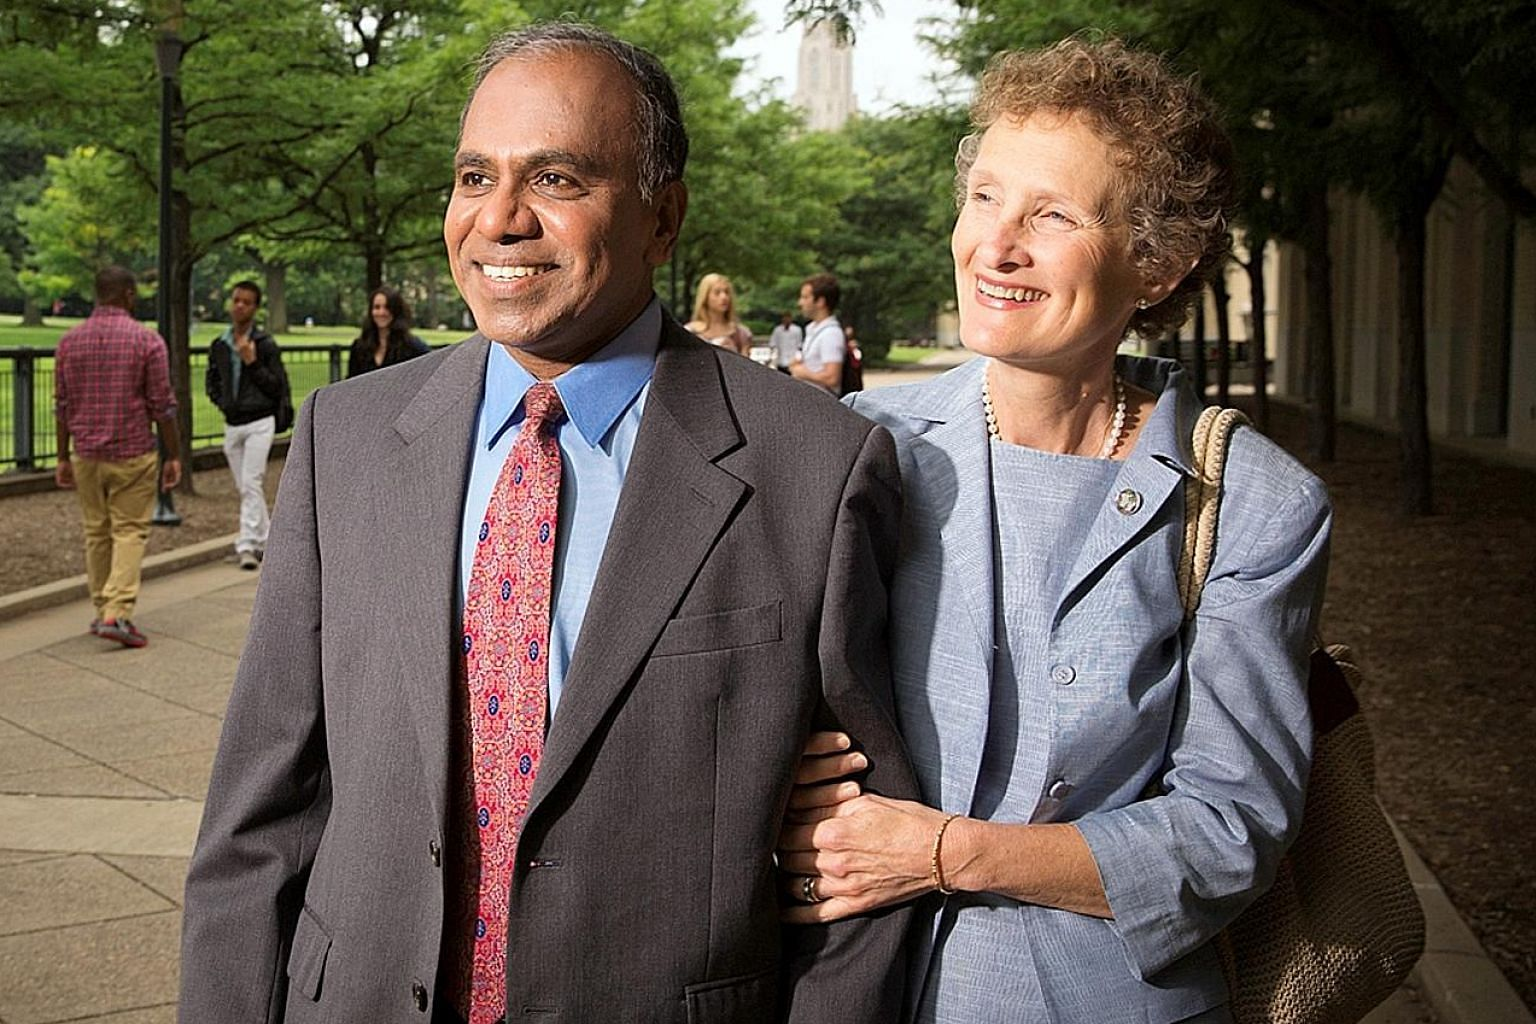 "NTU's current president Bertil Andersson said the future of NTU ""is in safe hands"" under Prof Suresh. Professor Subra Suresh, seen here with his wife Mary, until recently served as president of Carnegie Mellon University. He said he has been interact"